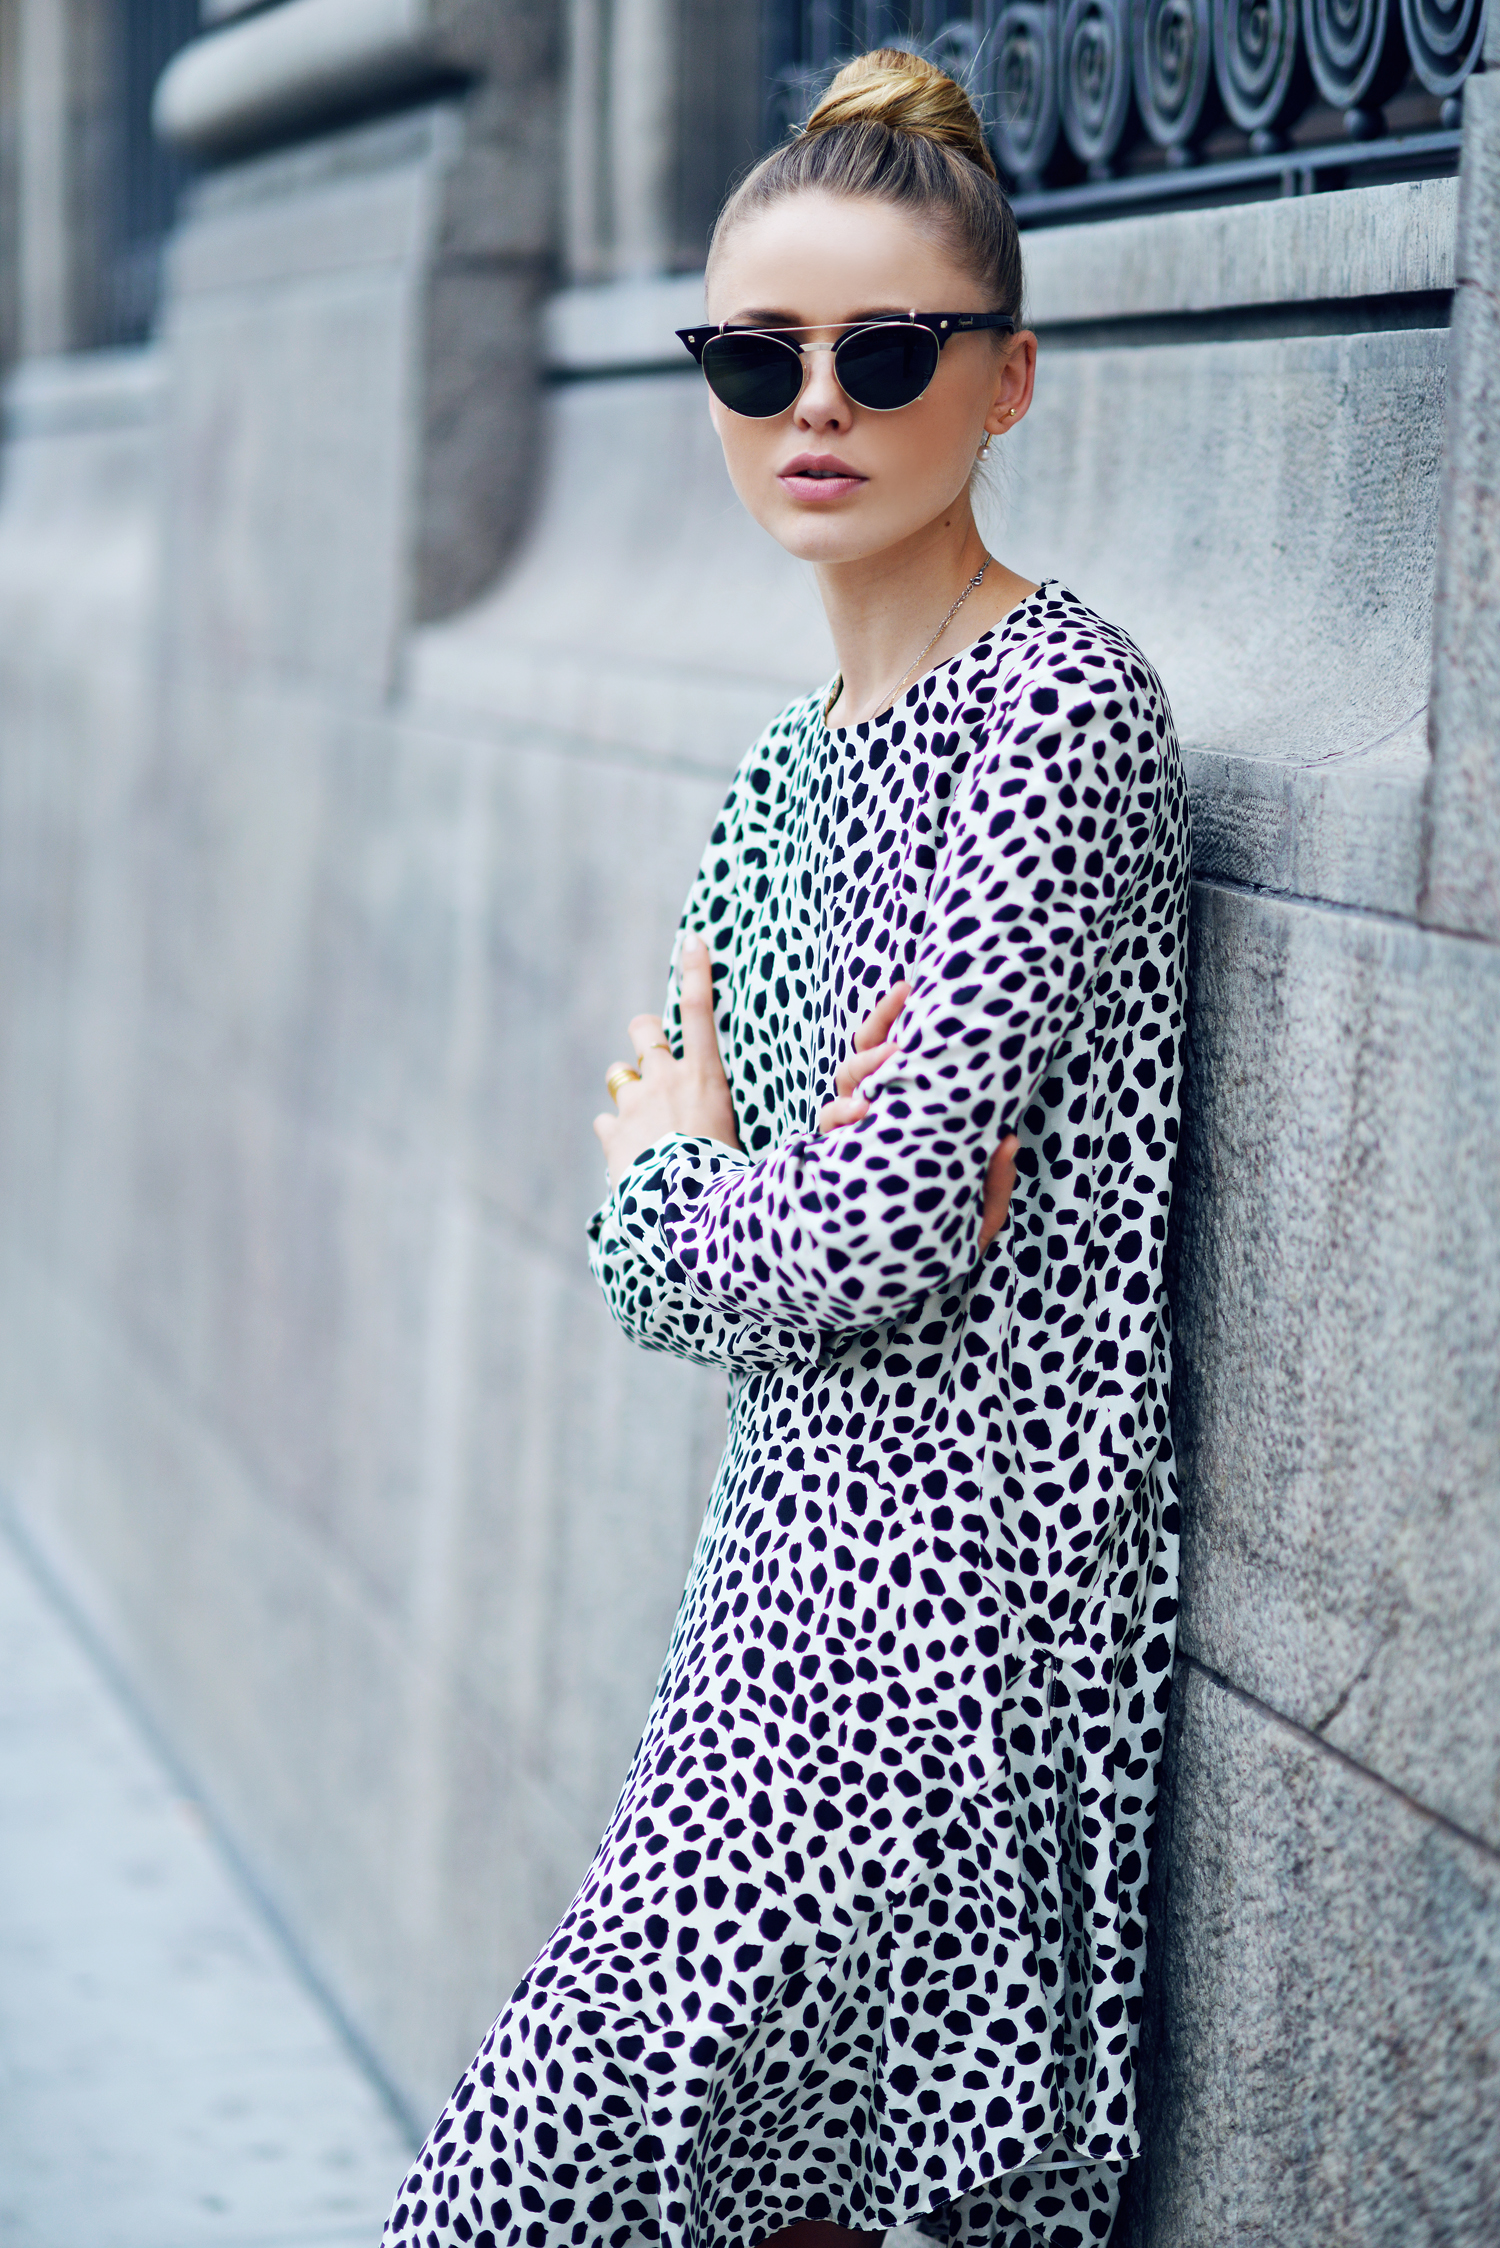 Kristina Bazan is wearing a leopard print dress from Chloe and sunglasses from D Squared